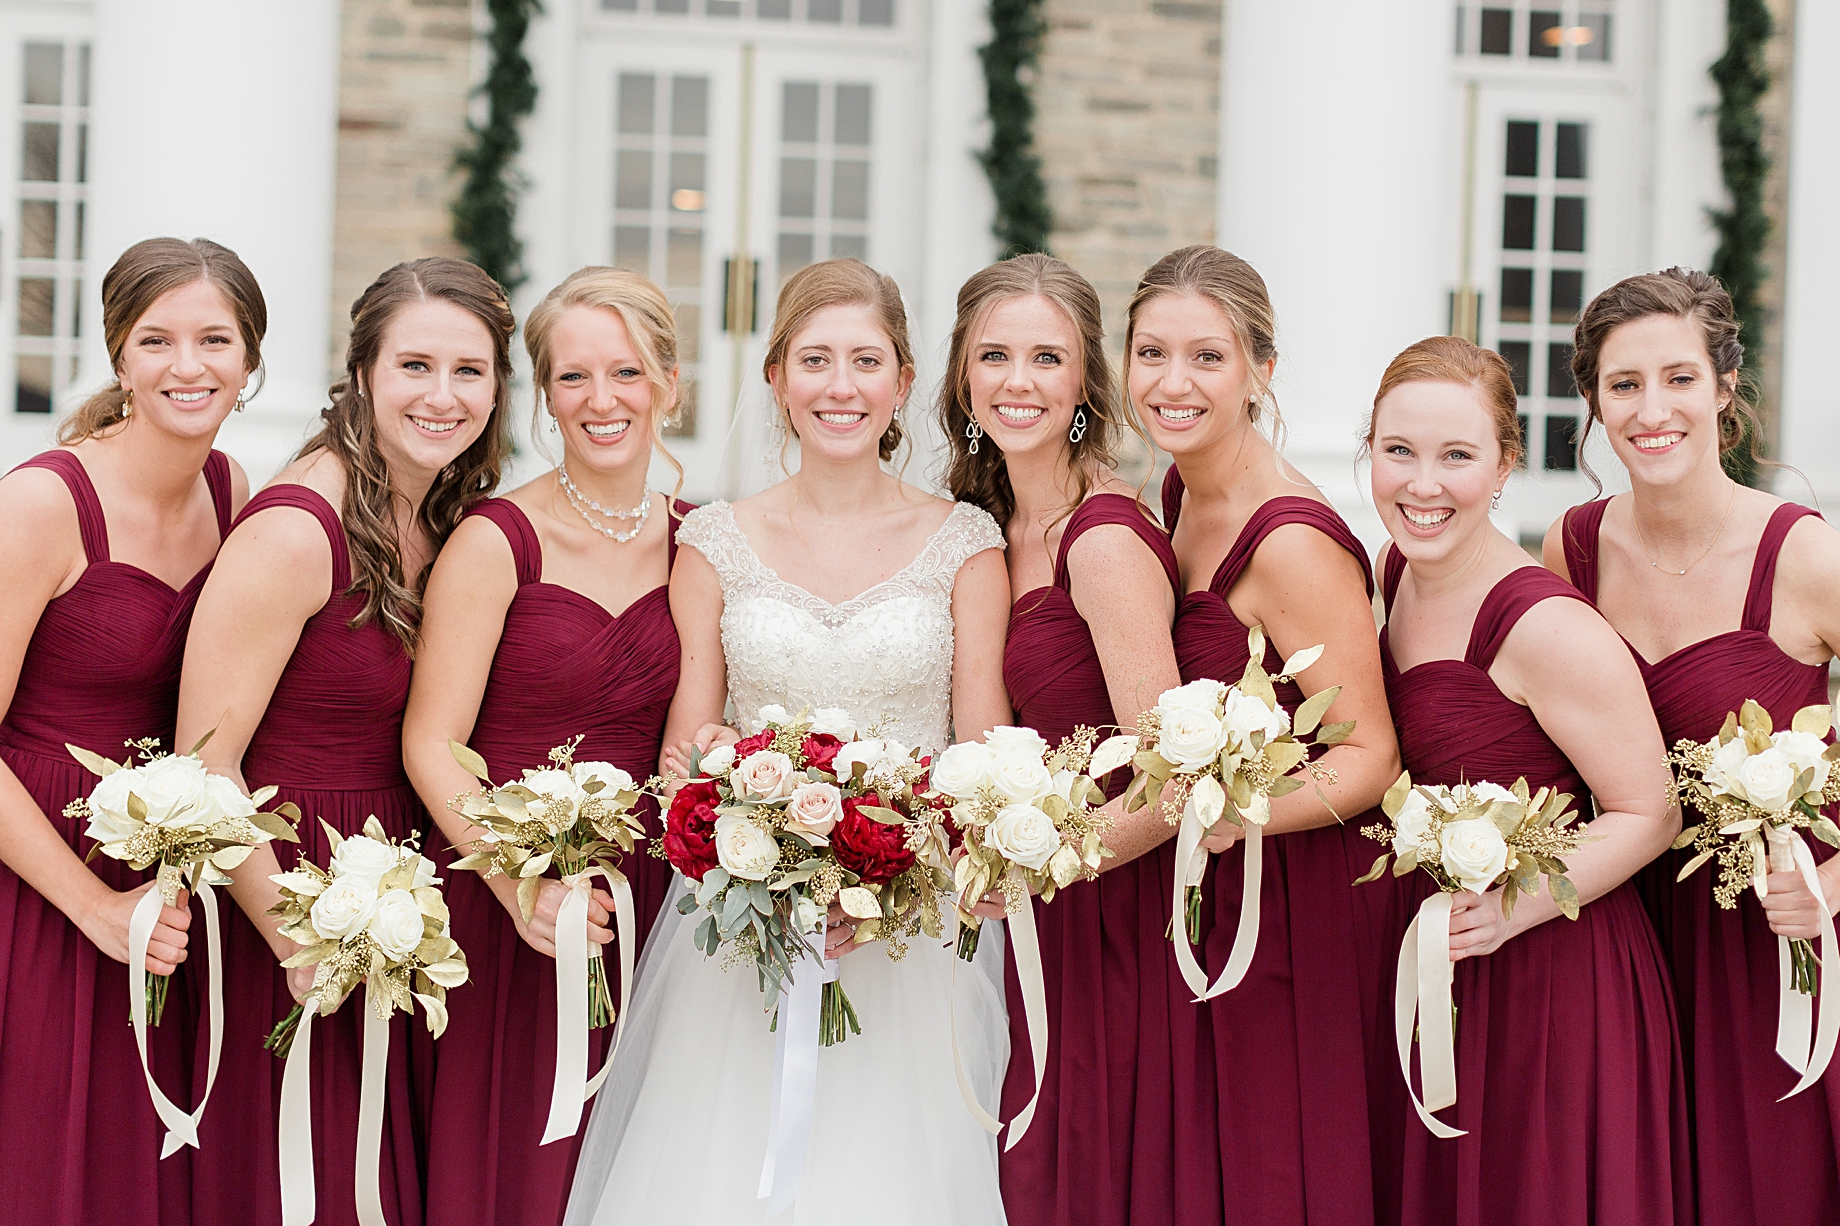 Sarah canning photography philadelphia wedding photographer finally the ceremony arrived the church was just fabulous seeing a couple come together in marriage is such a magical moment ombrellifo Images